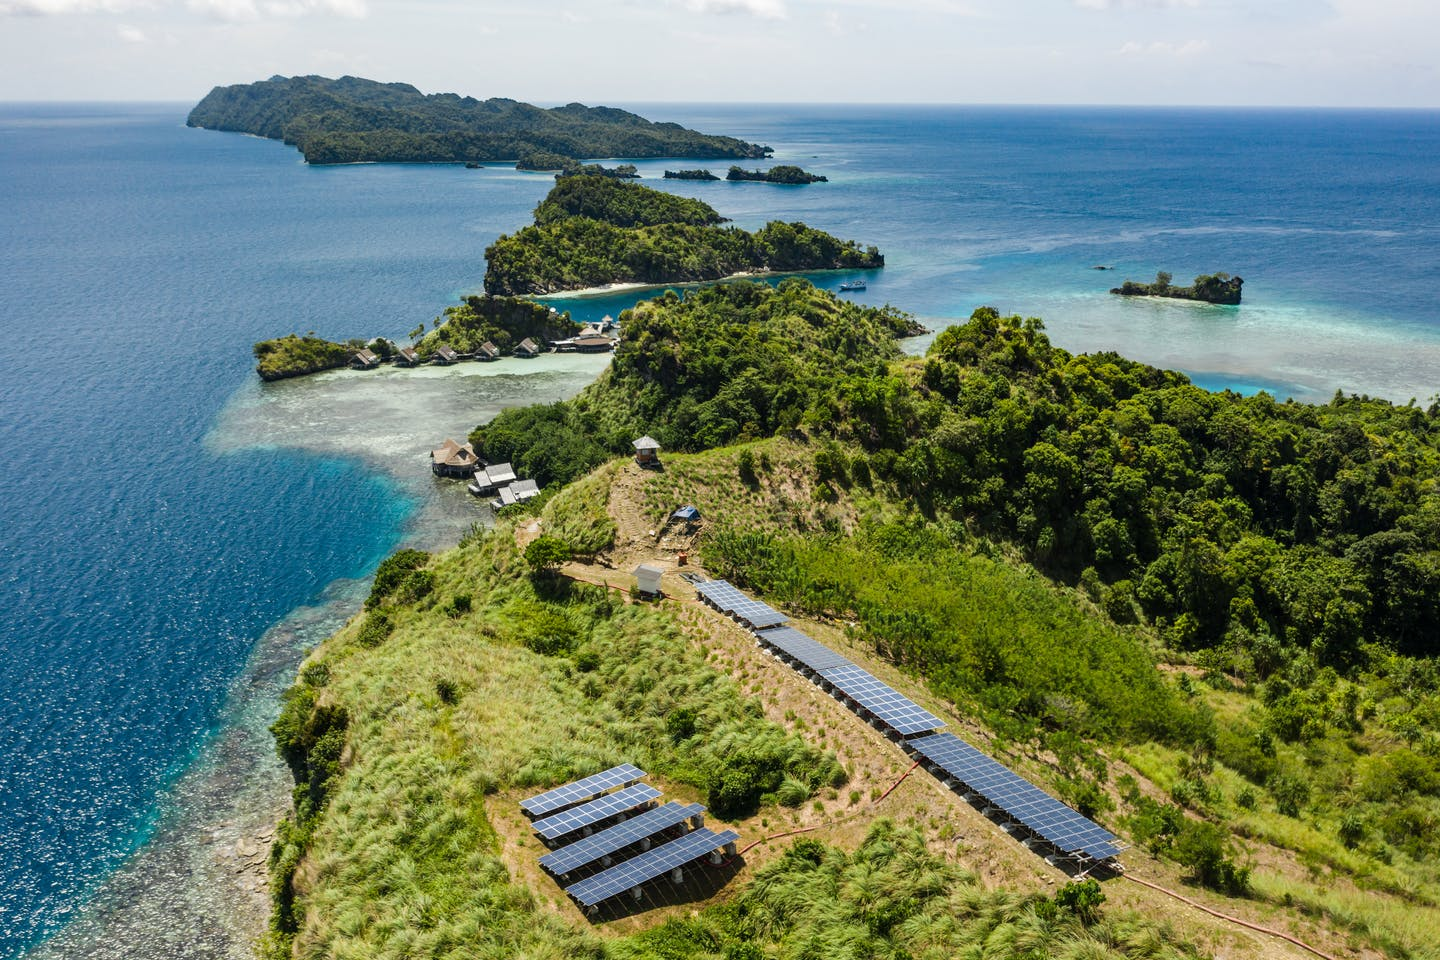 Misool eco-resort in Raja Ampat, Indonesia